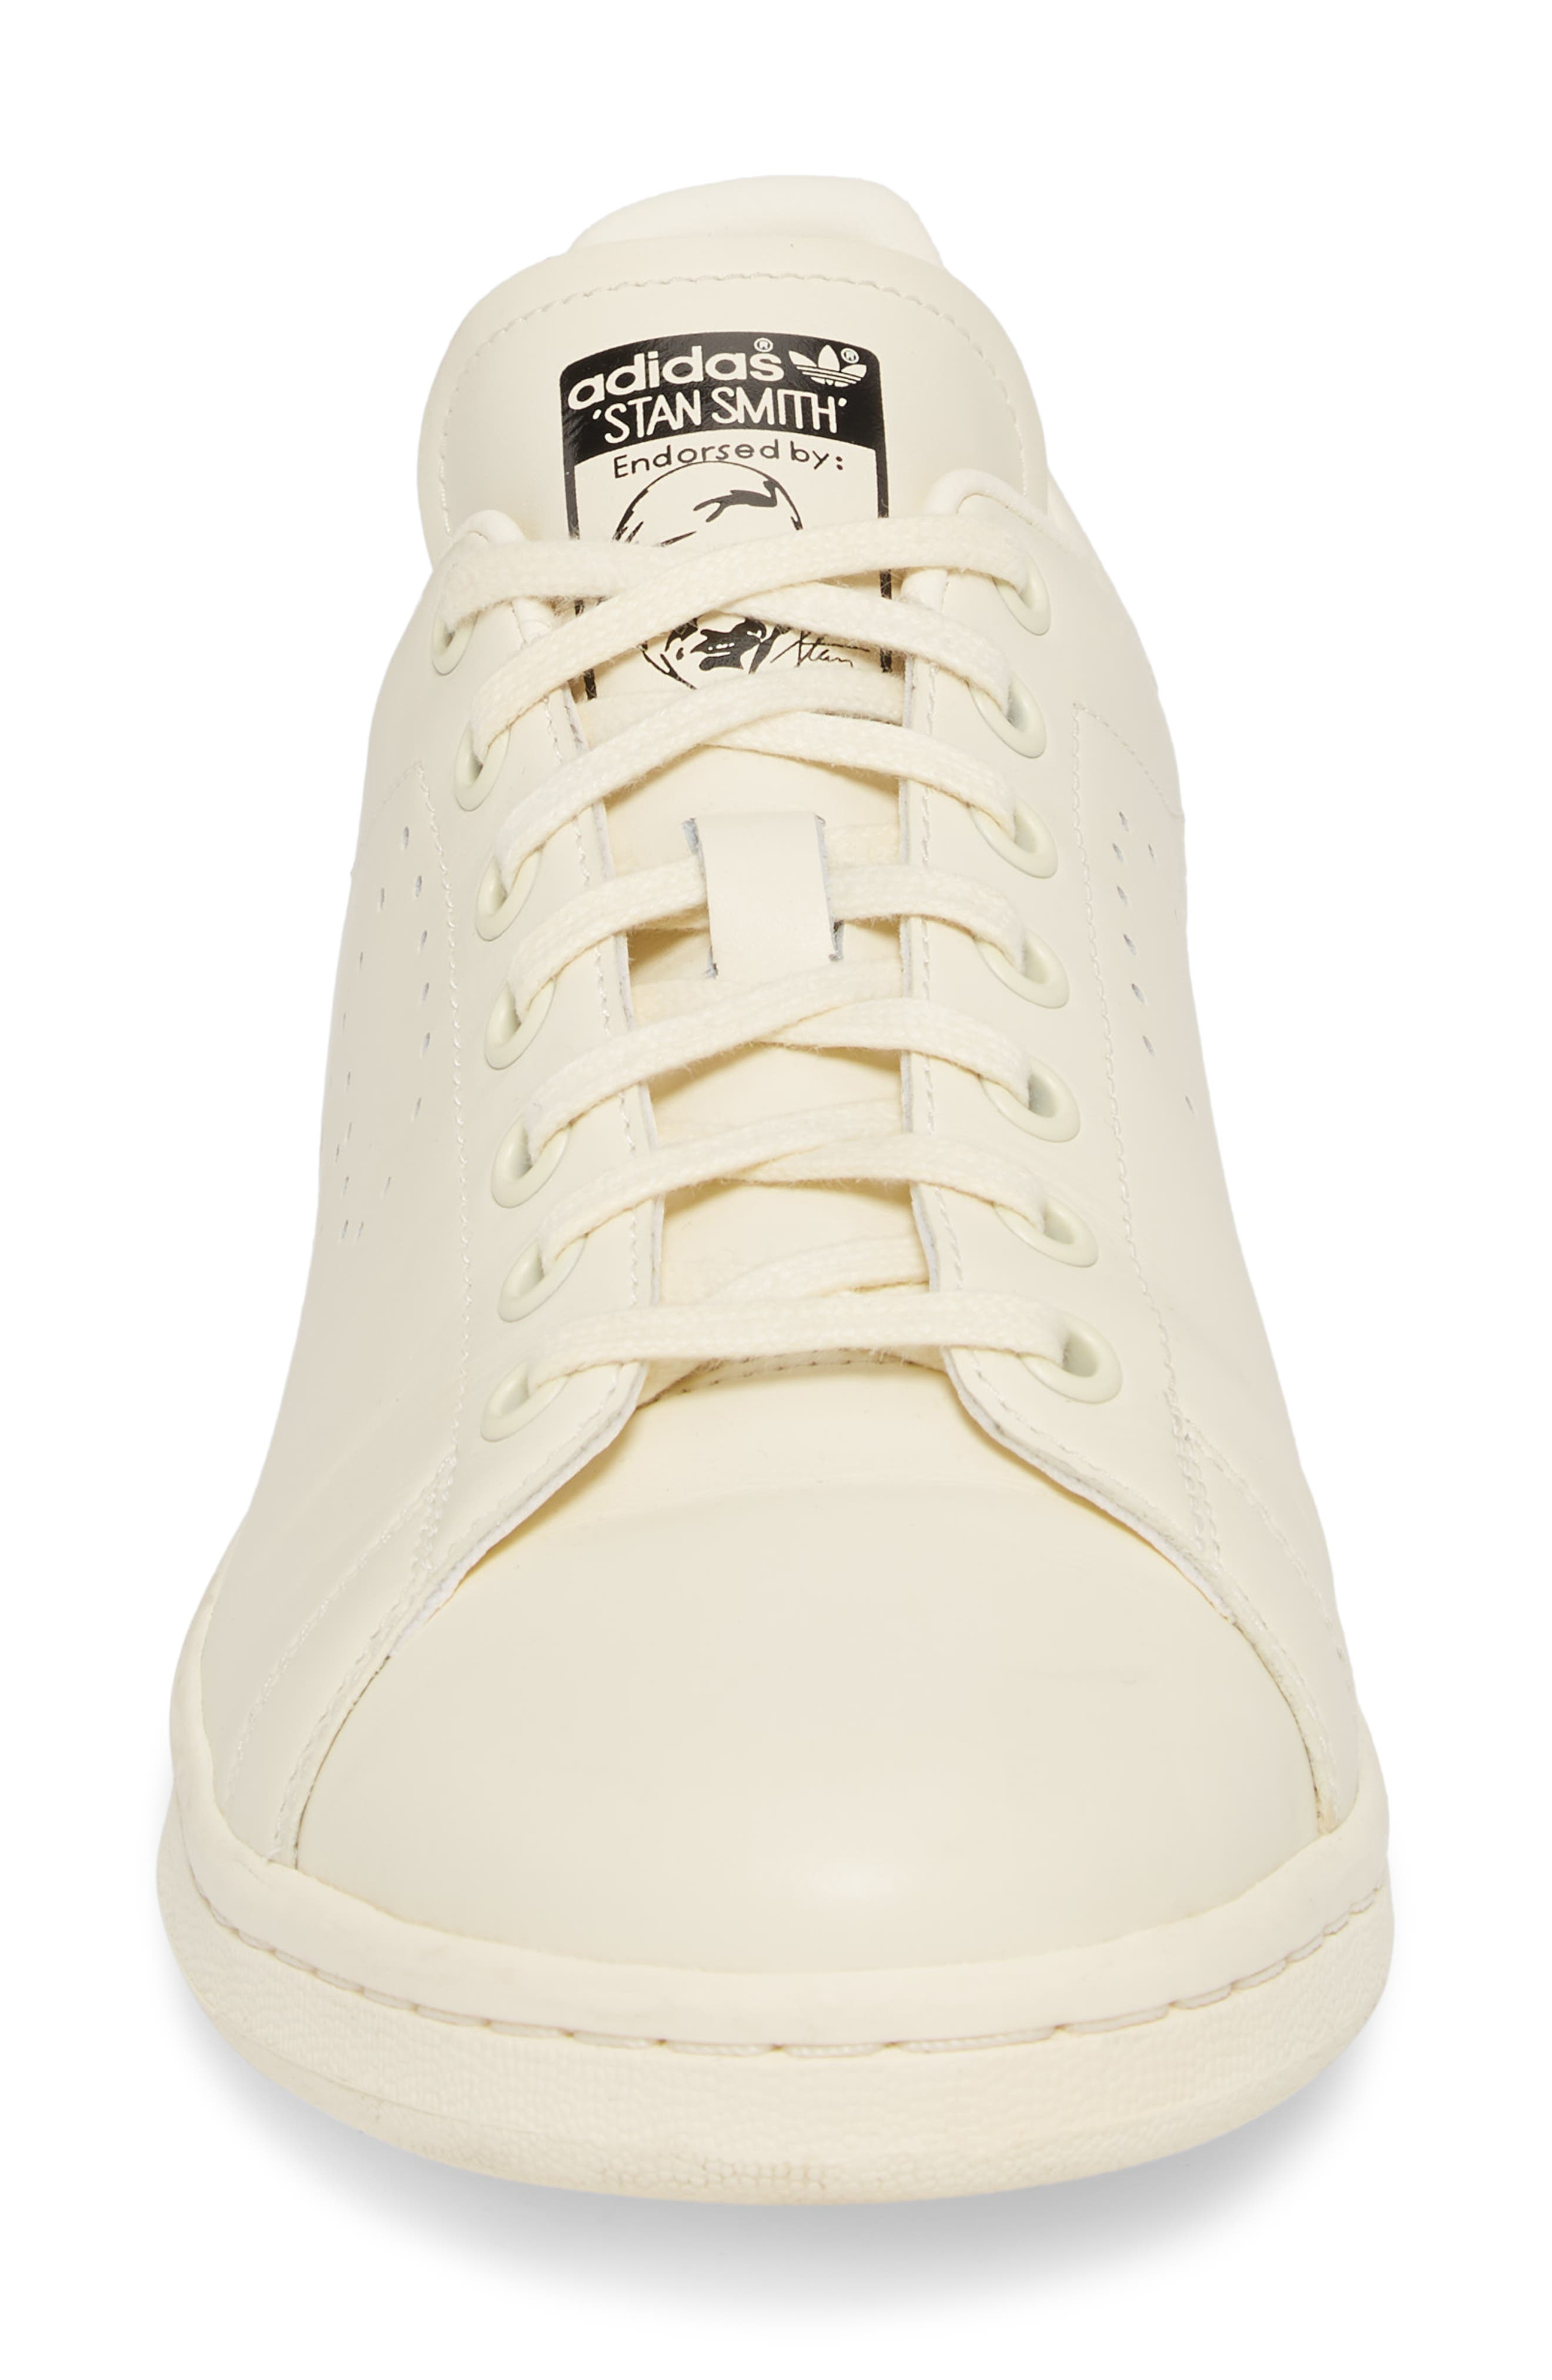 RAF SIMONS BY ADIDAS,                             adidas by Raf Simons 'Stan Smith' Sneaker,                             Alternate thumbnail 4, color,                             151